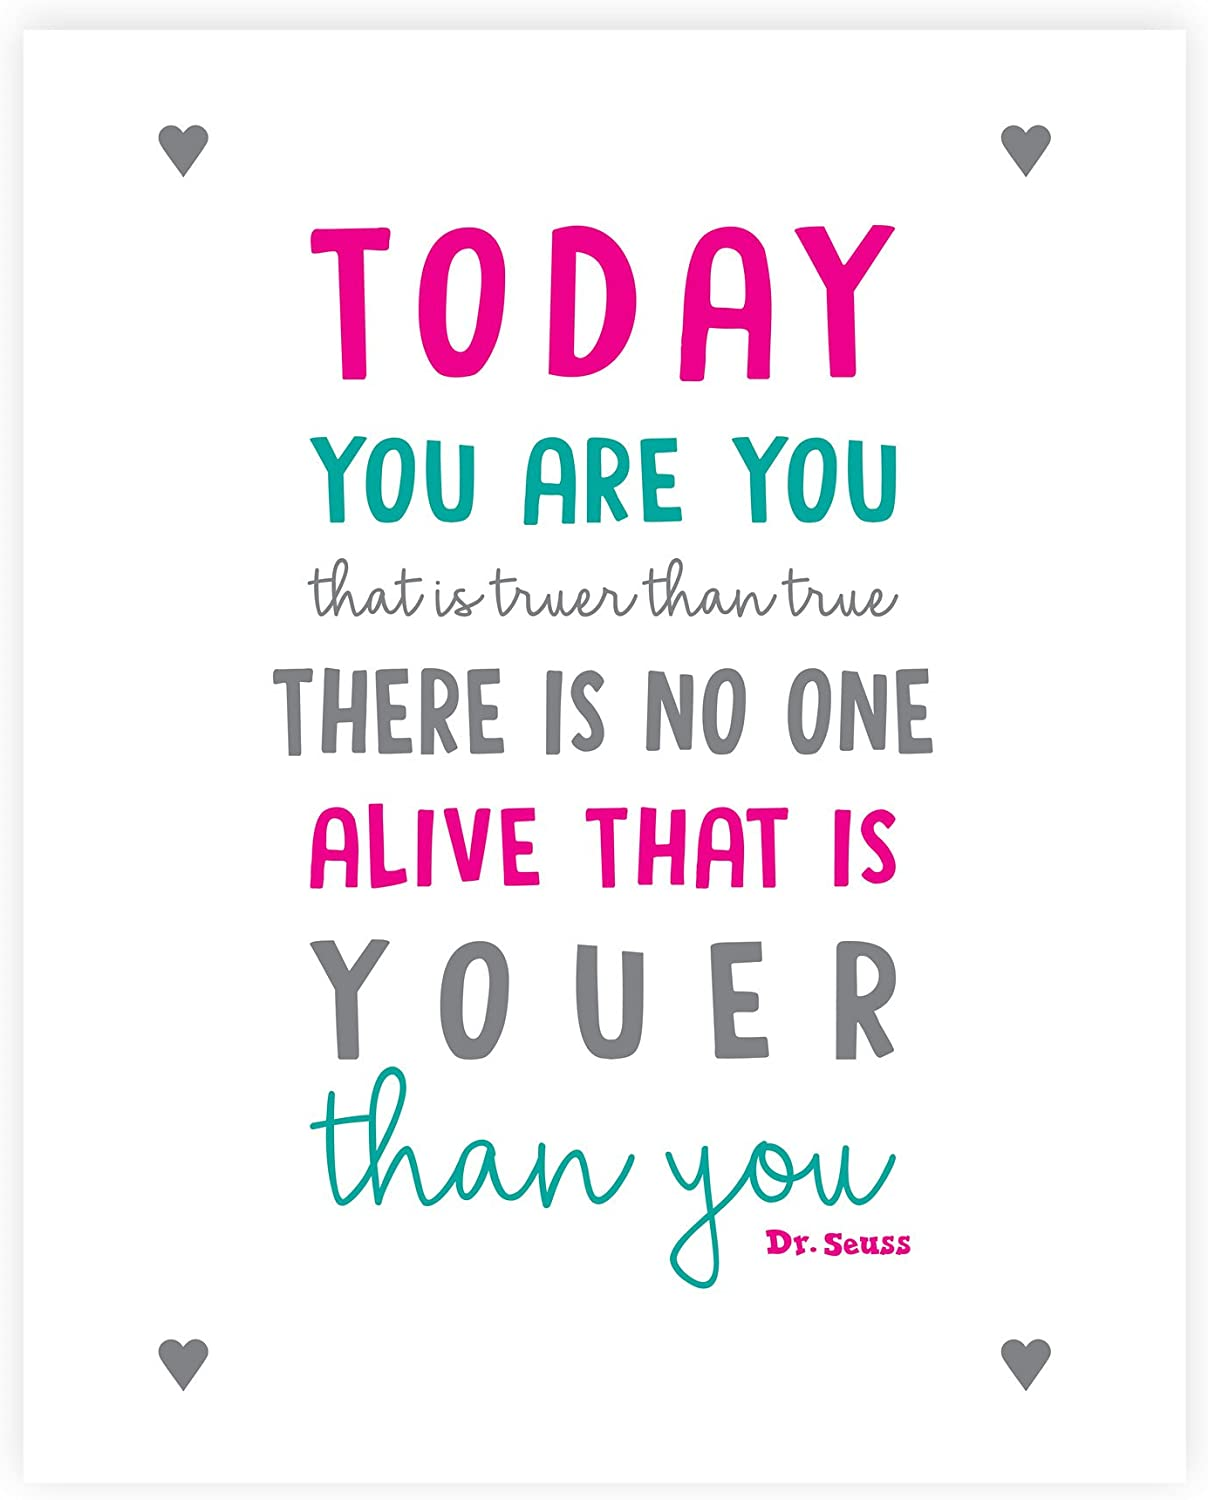 Today You Are You That Is Truer Than True 08x10 Inch Print Dr Seuss Today You Are You That Is Truer Than True Decor Nursery Decor Kid Love Classroom Décor Wall